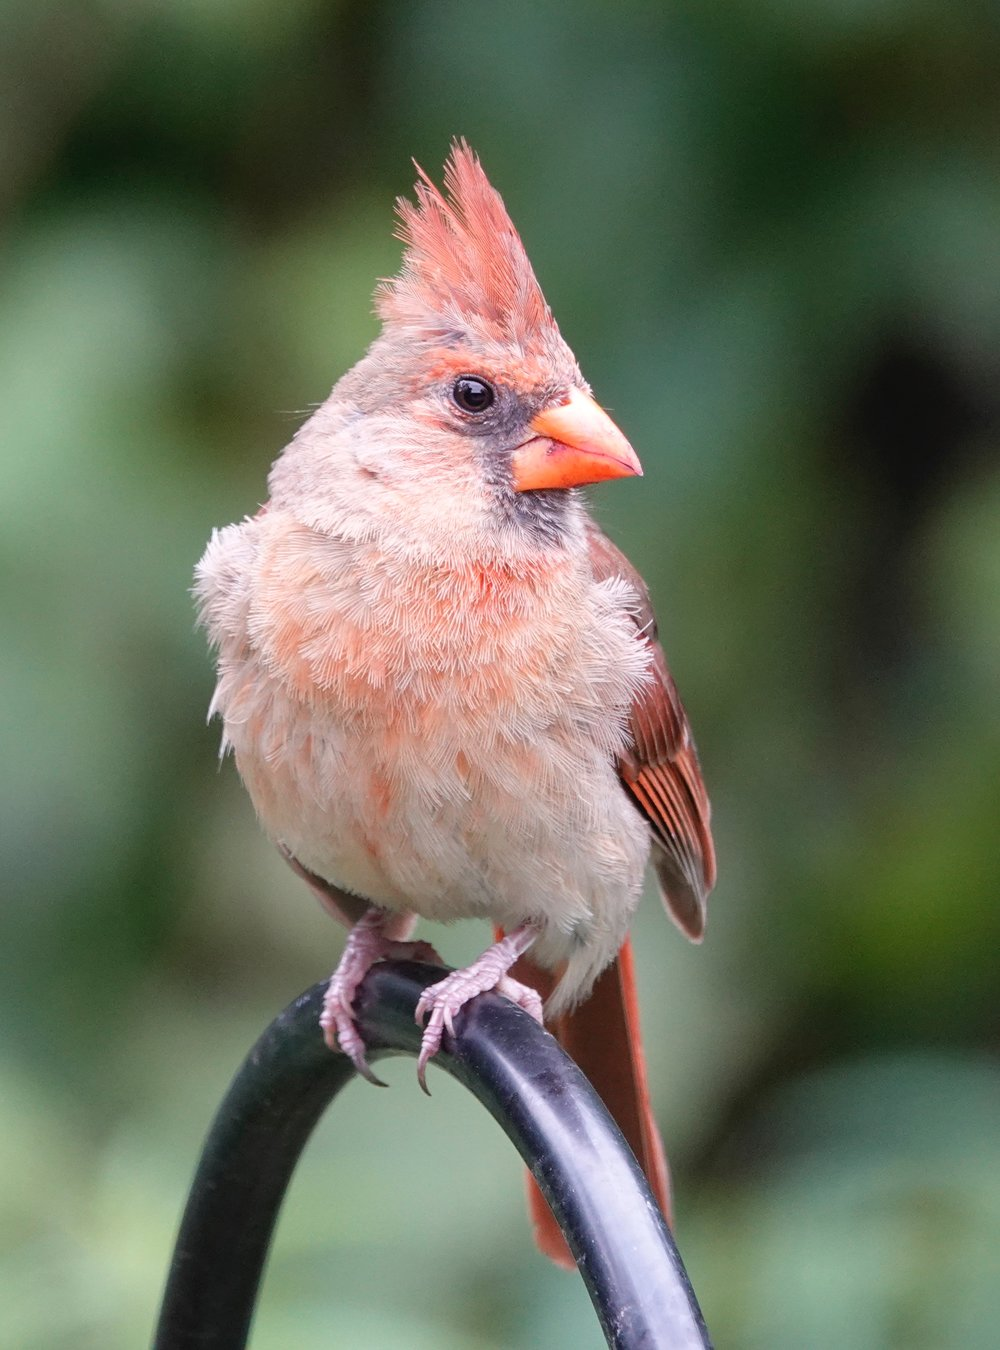 Native American lore holds that if you see a cardinal, you can expect good luck in 12 hours or 12 days.